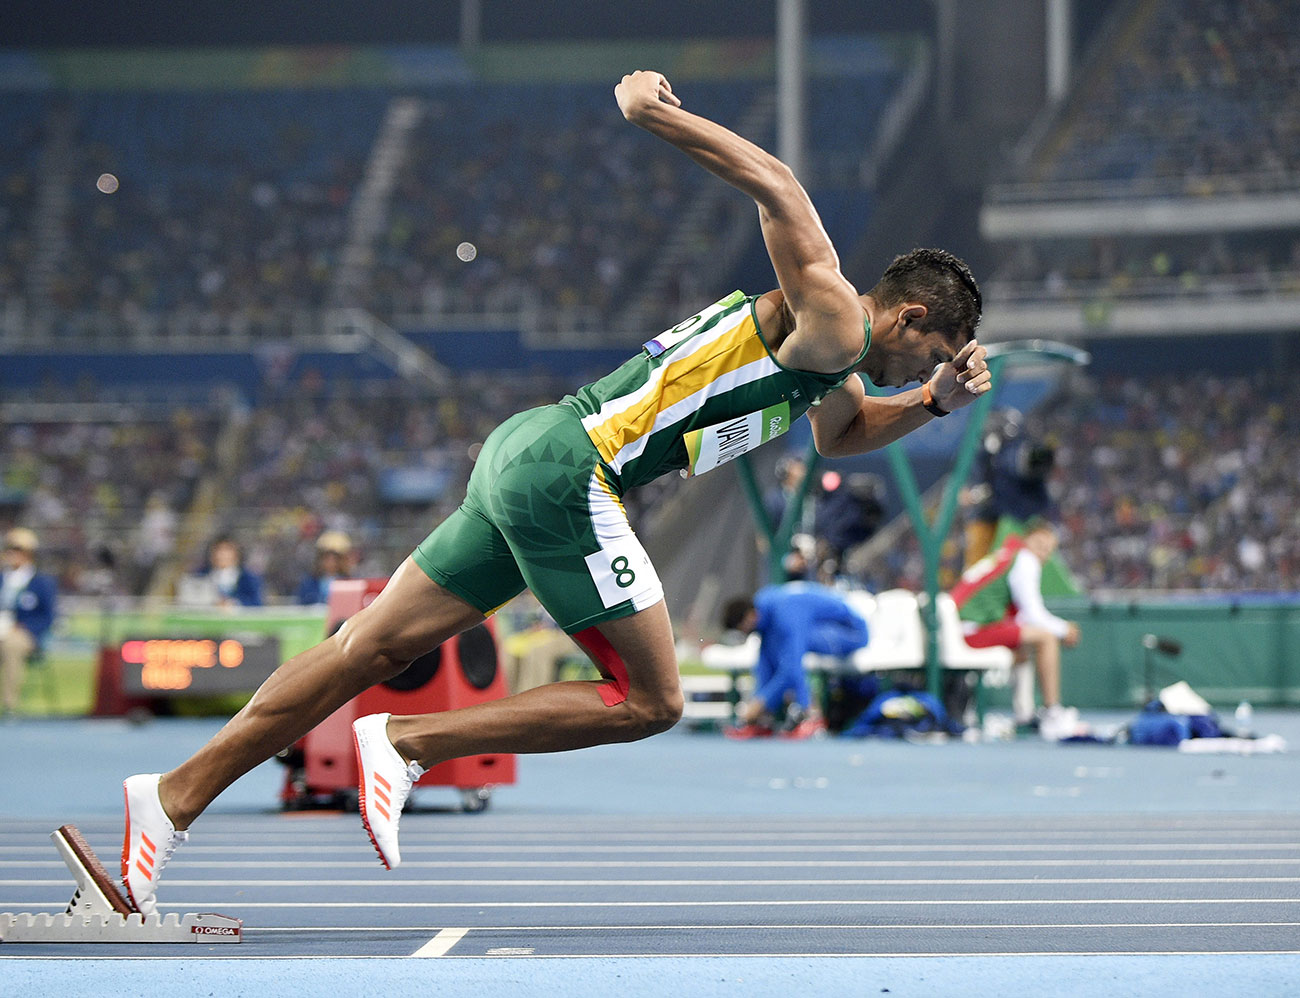 What to Know About Wayde van Niekerk, the South African Athlete ...